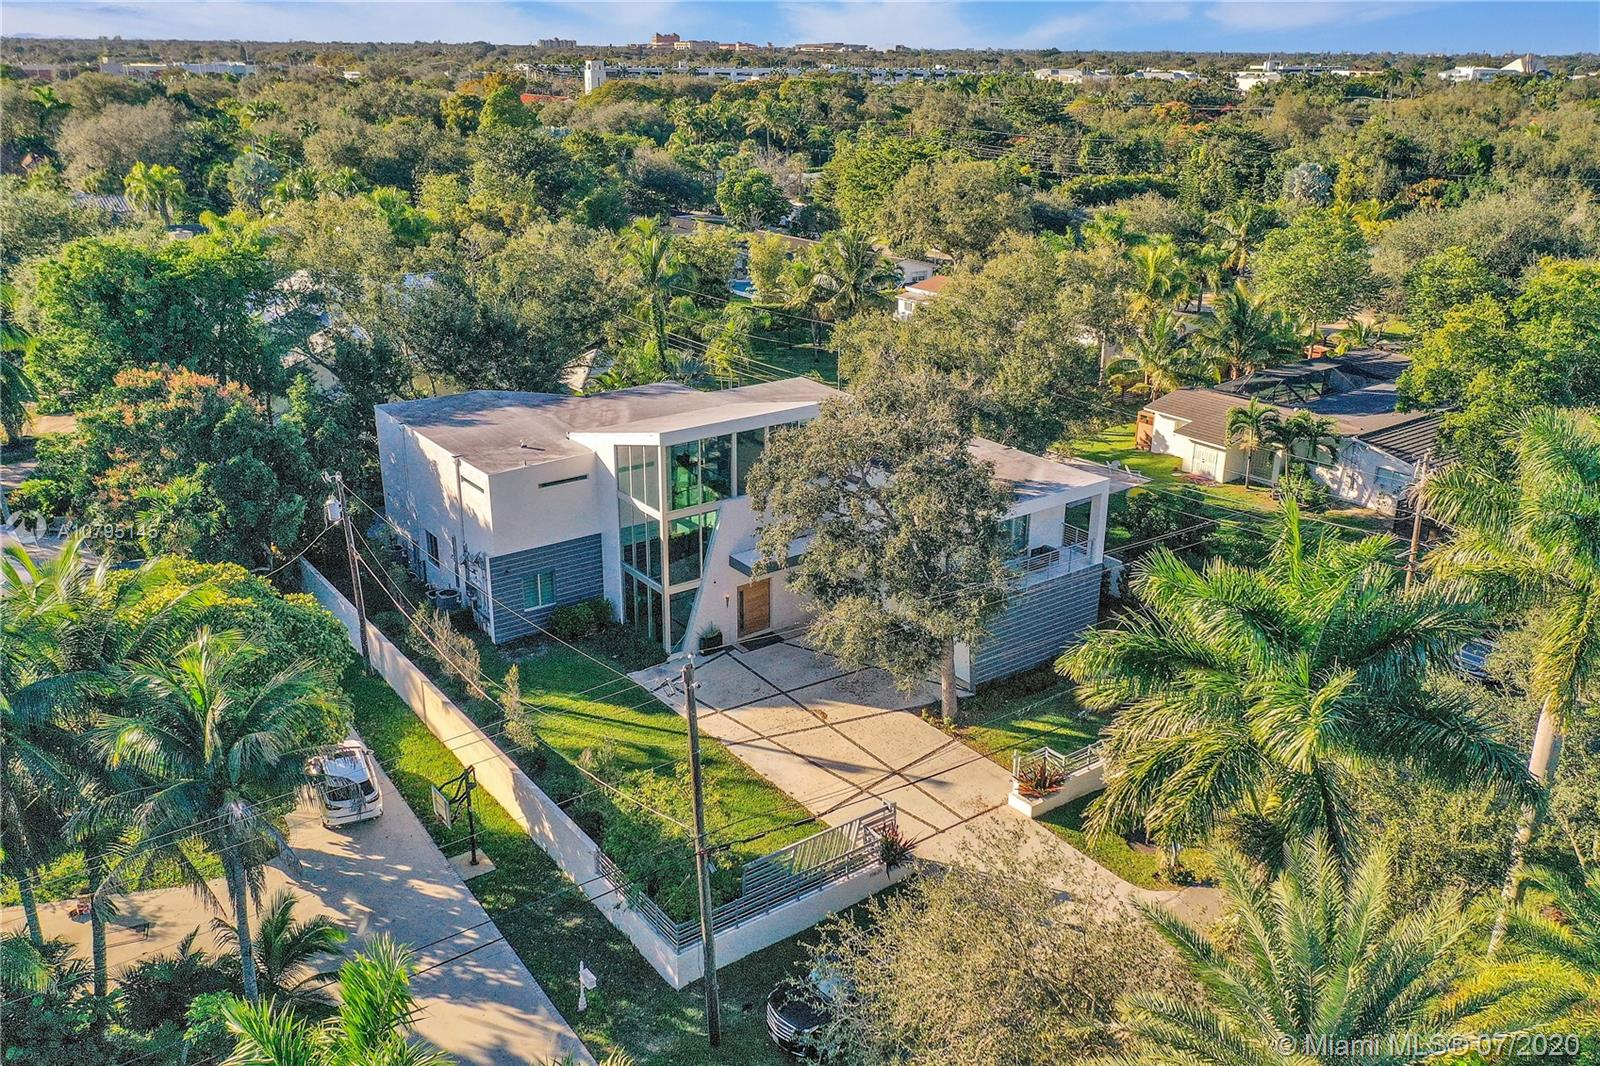 10620 SW 74th Ave, Pinecrest, FL 33156